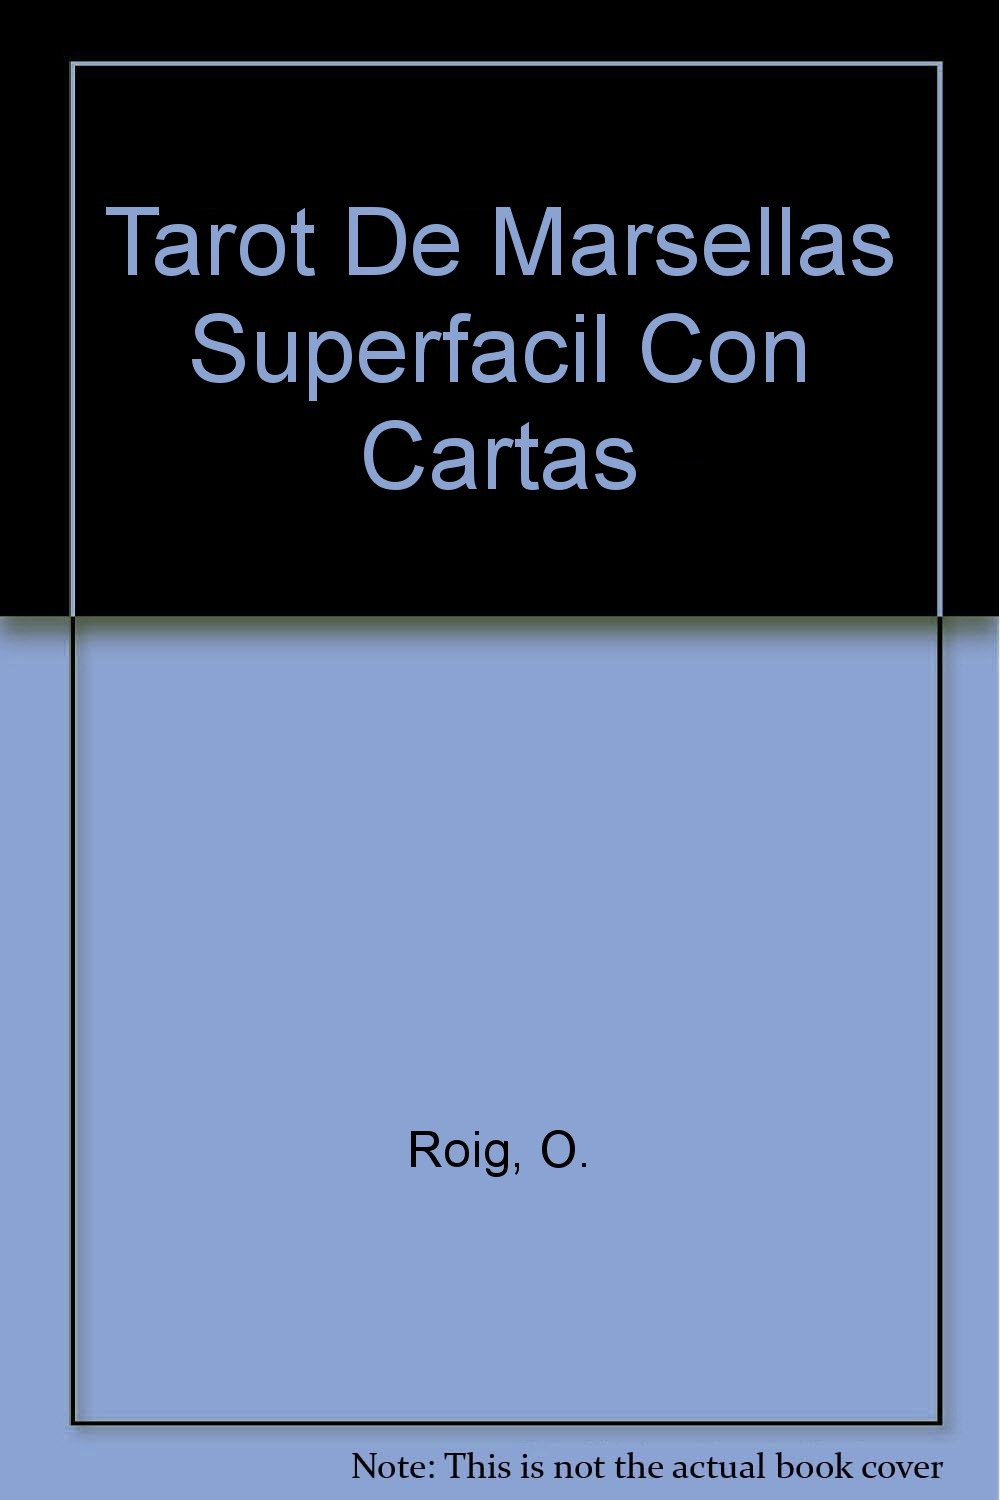 El tarot de marsella superfacil: Amazon.es: O. Roig: Libros